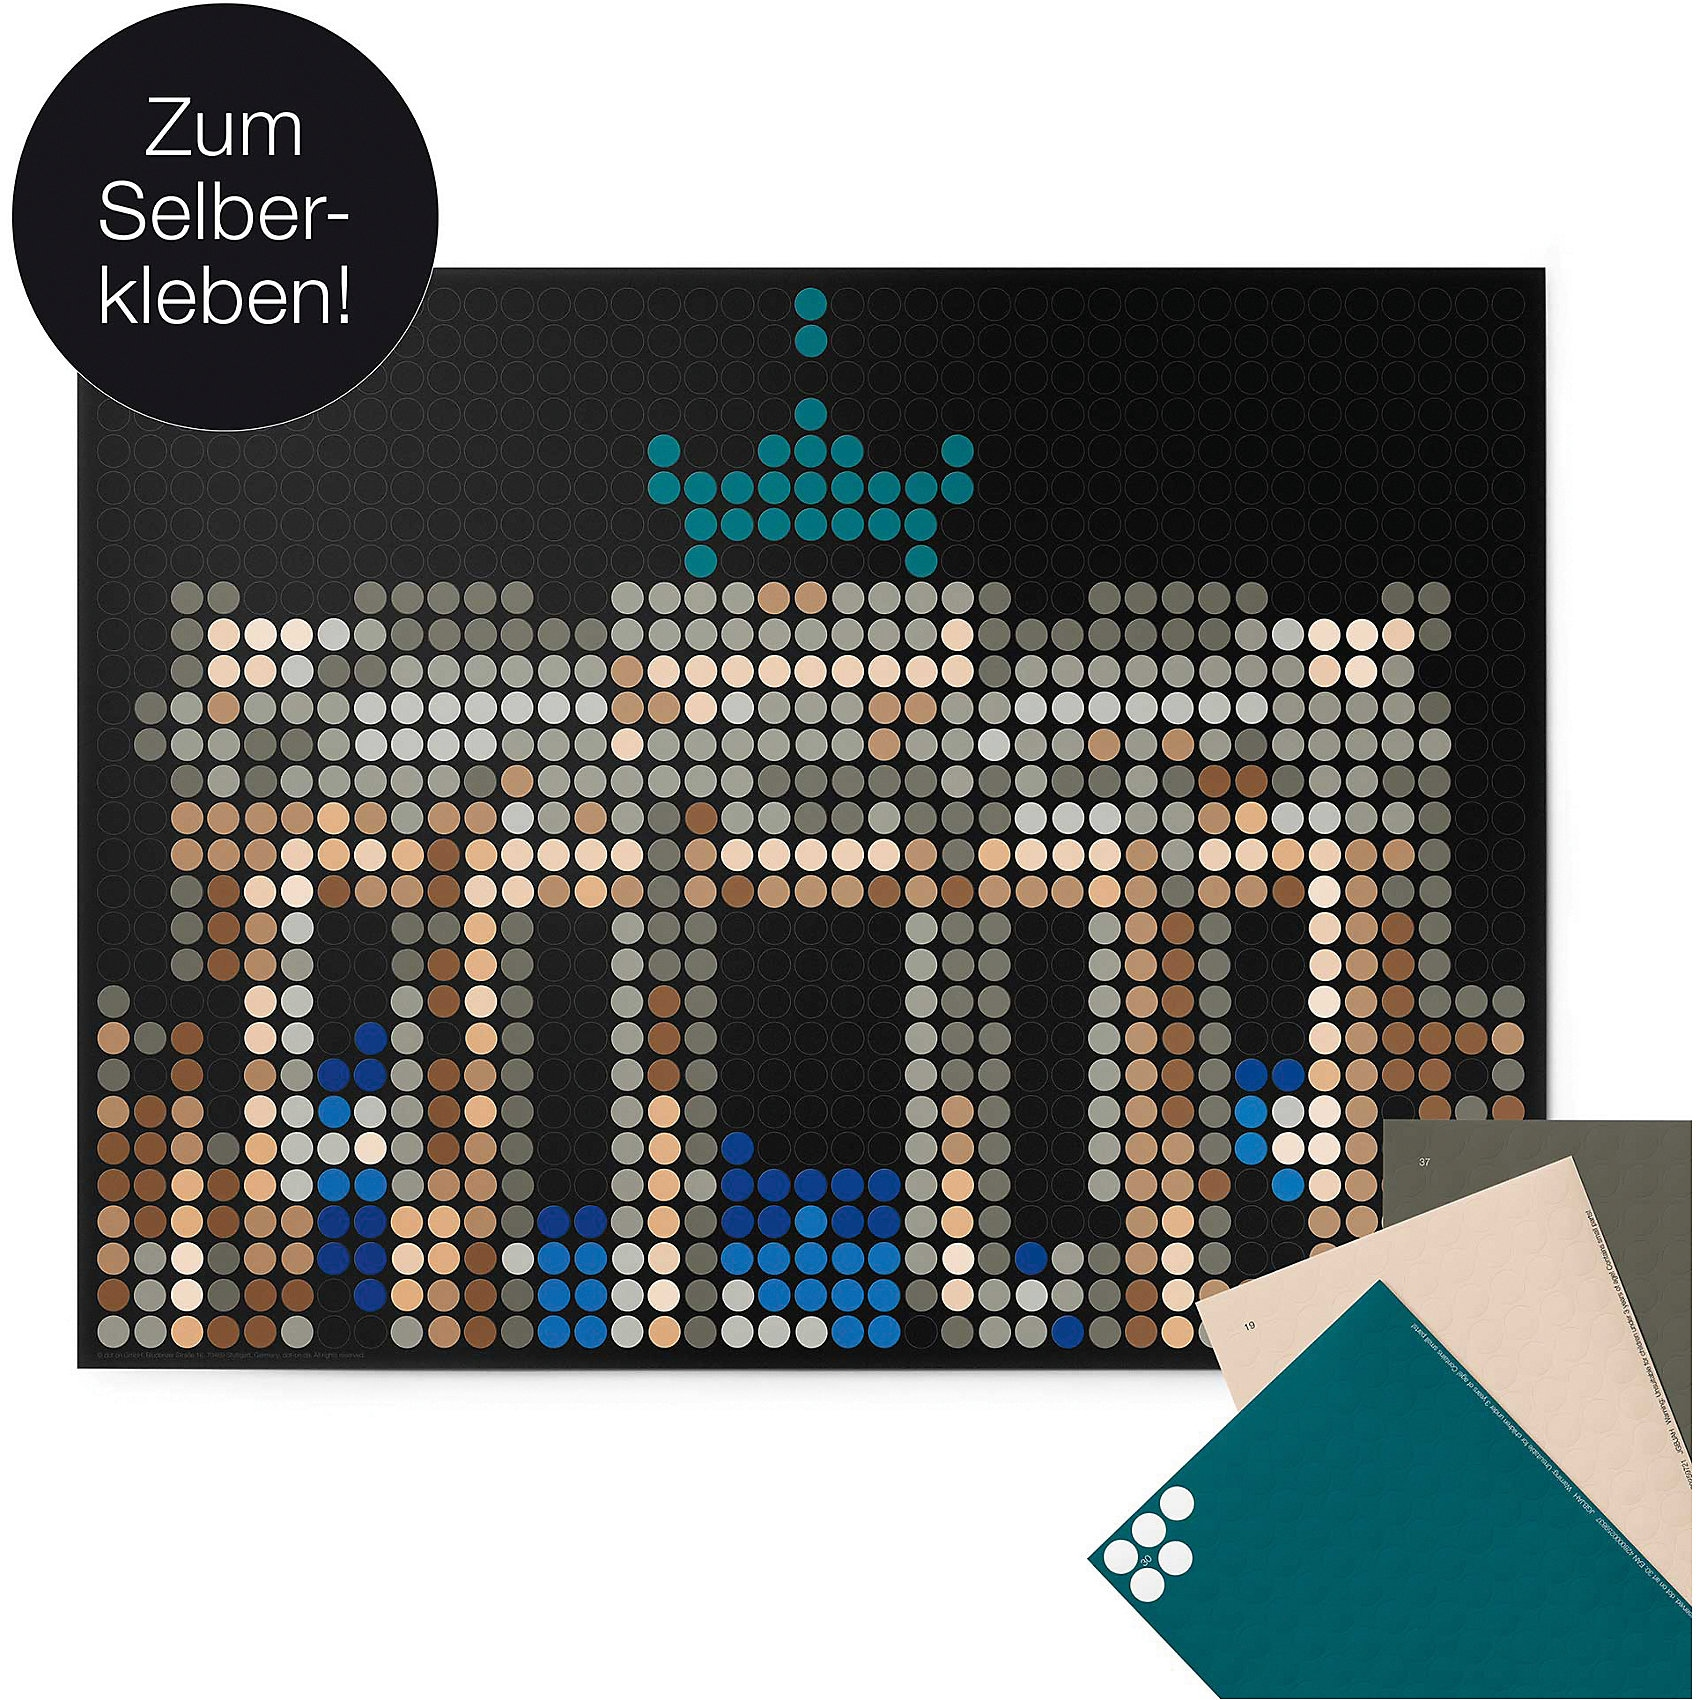 dot on art - brandenburg gate 30 x 40 cm